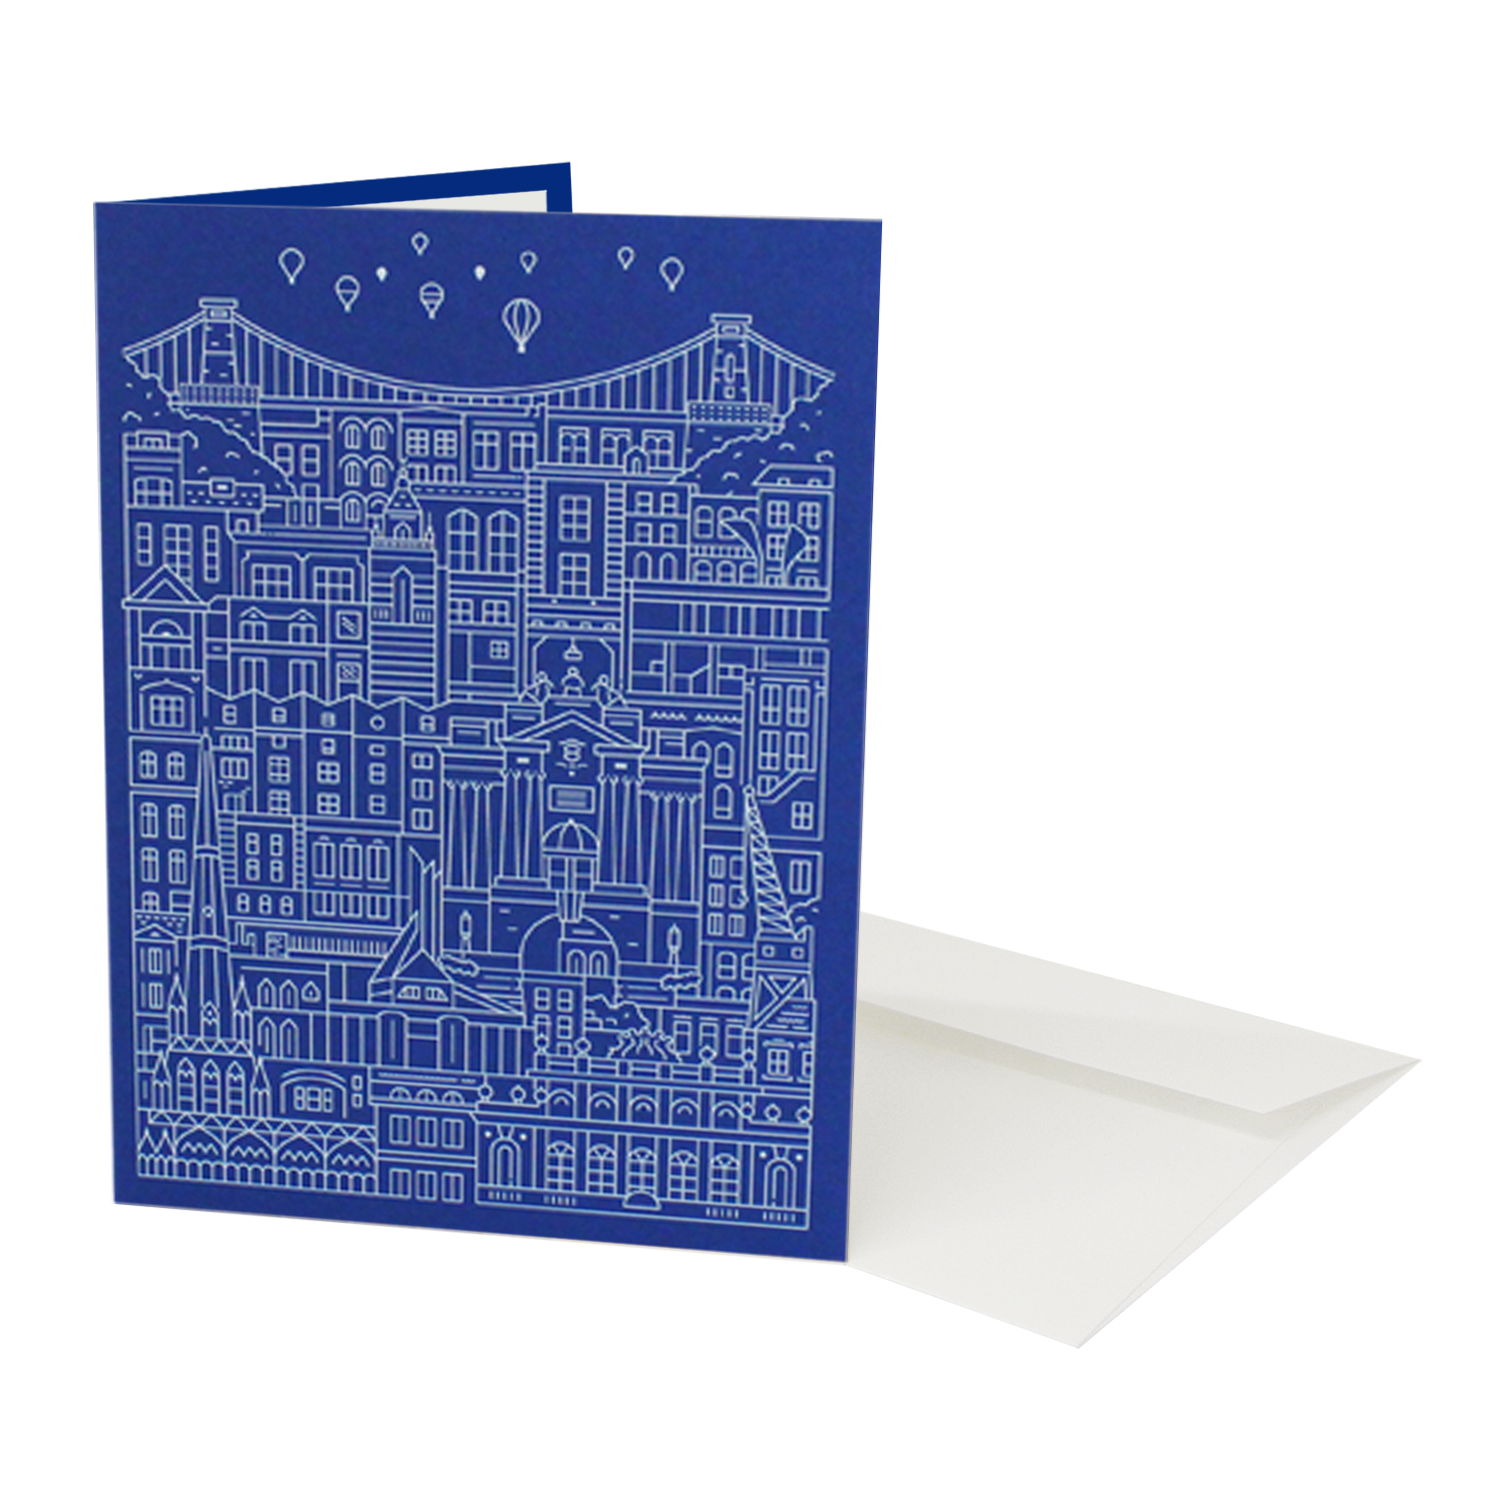 Place in Print The City Works Bristol Greetings Card Exterior